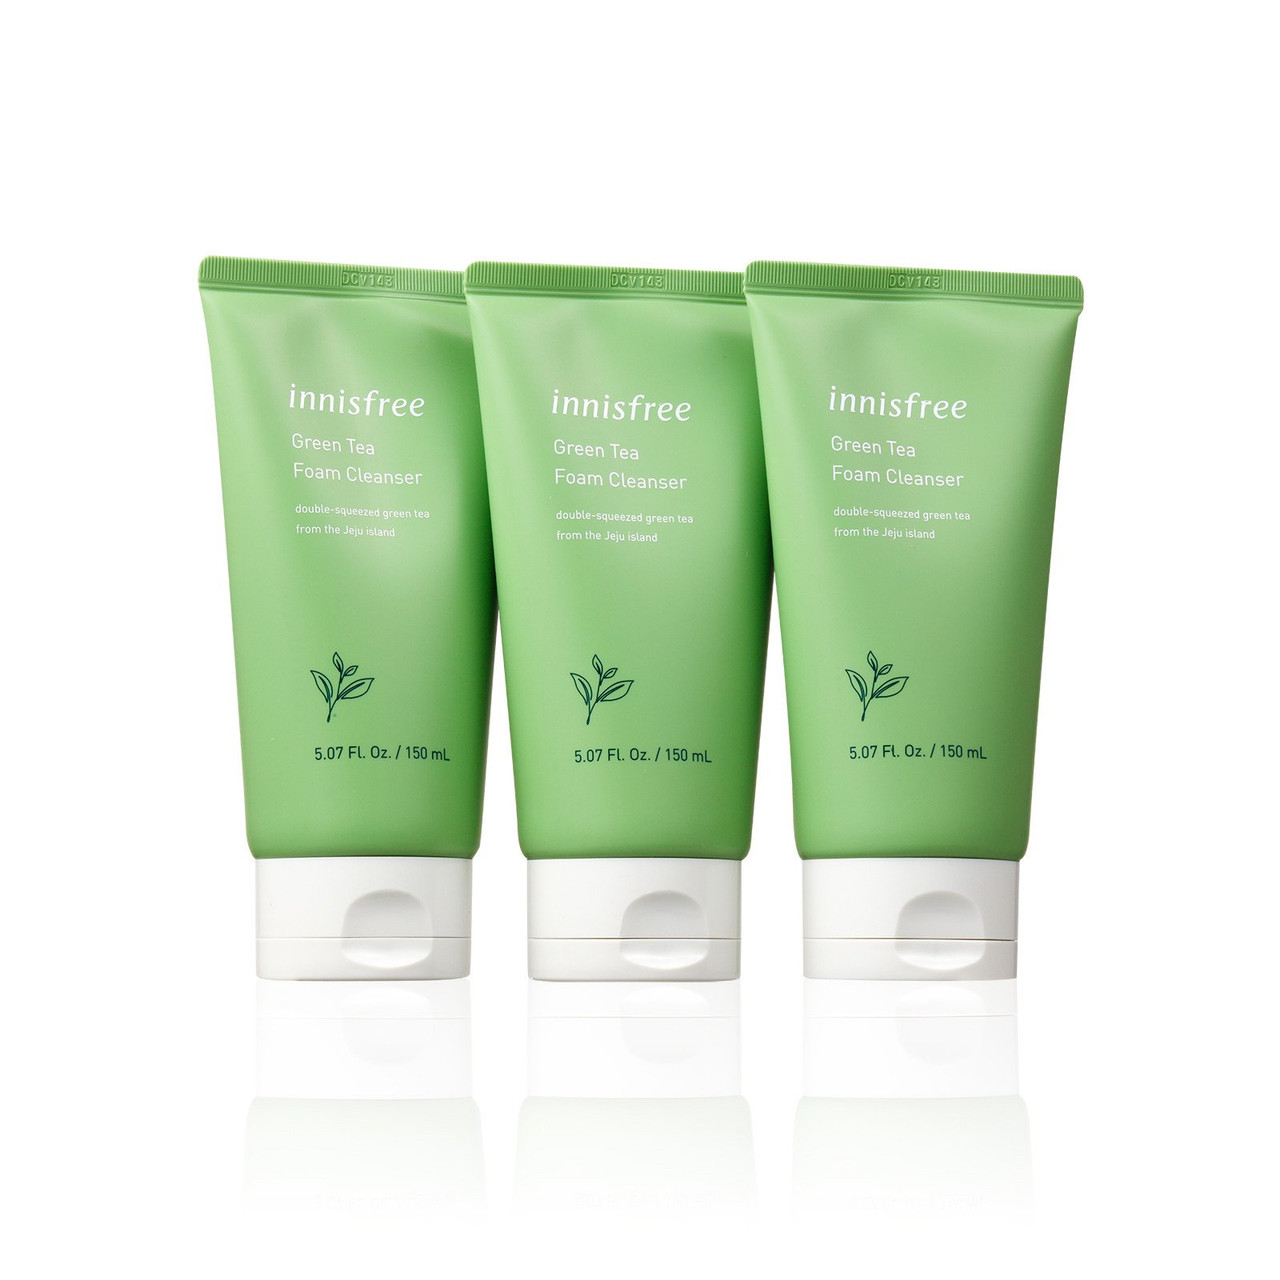 Innisfree Green Tea Foam Cleanser | Bonjour Global EU